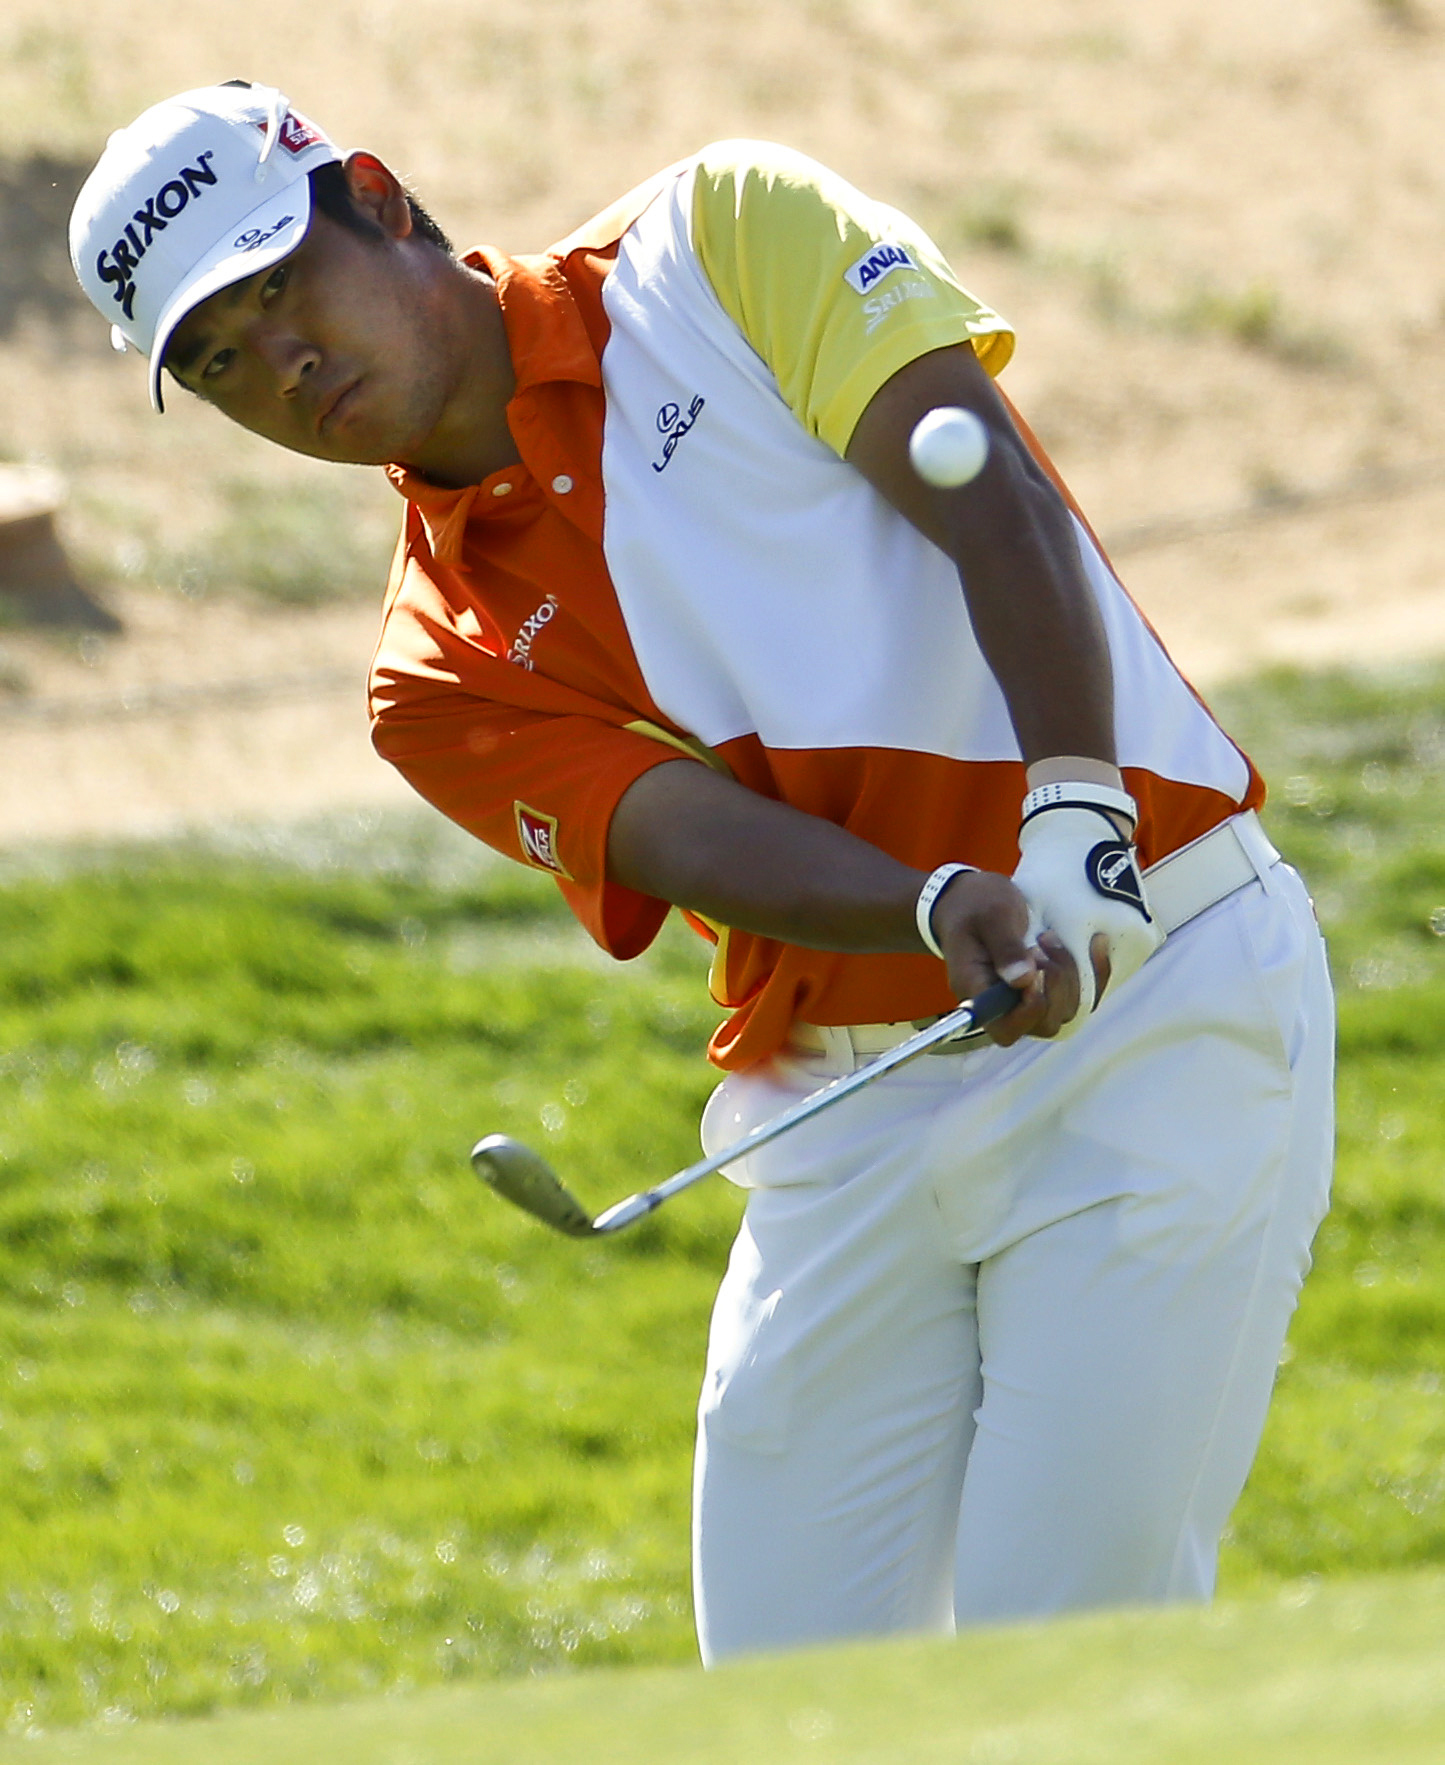 Hideki Matsuyama, of Japan, hits a chip shot on the 15th hole in his match against Graeme McDowell, of Northern Ireland, during the second round of the Match Play Championship golf tournament on Thursday, Feb. 20, 2014, in Marana, Ariz